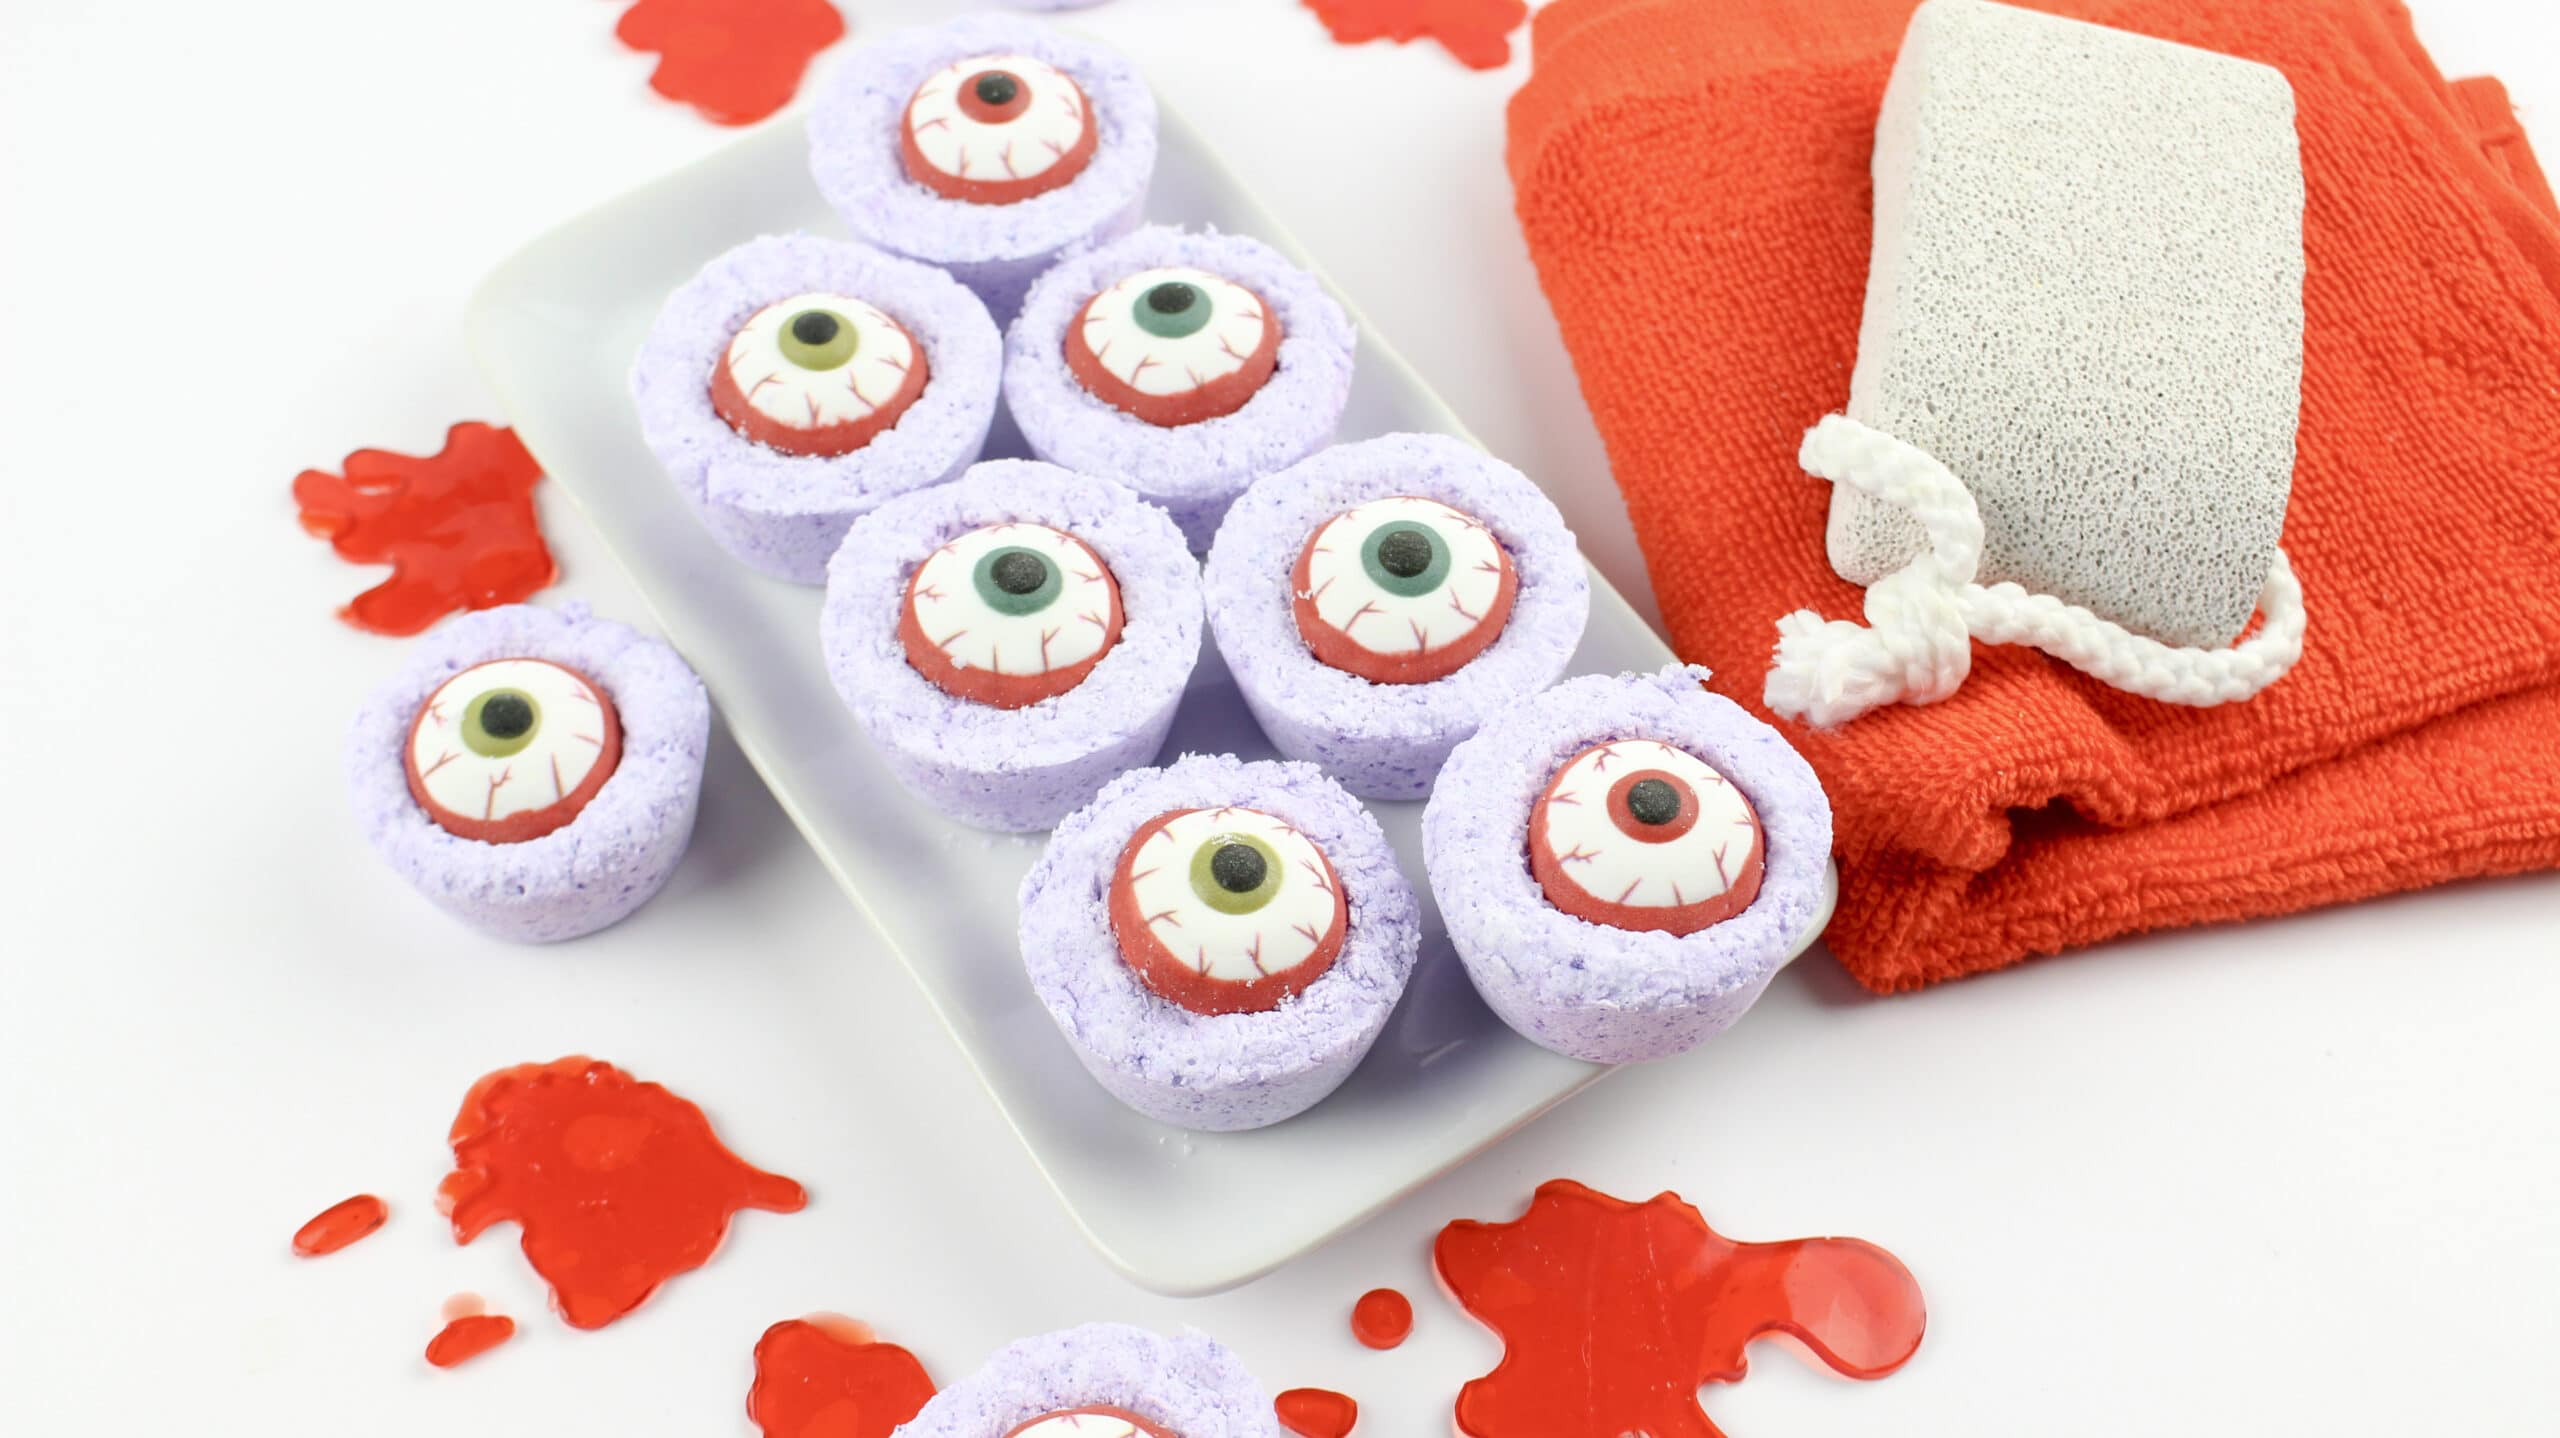 Zombie Eyes Bath Bombs Closeup. Create your very own DIY Zombie Eyes Bath Bombs.